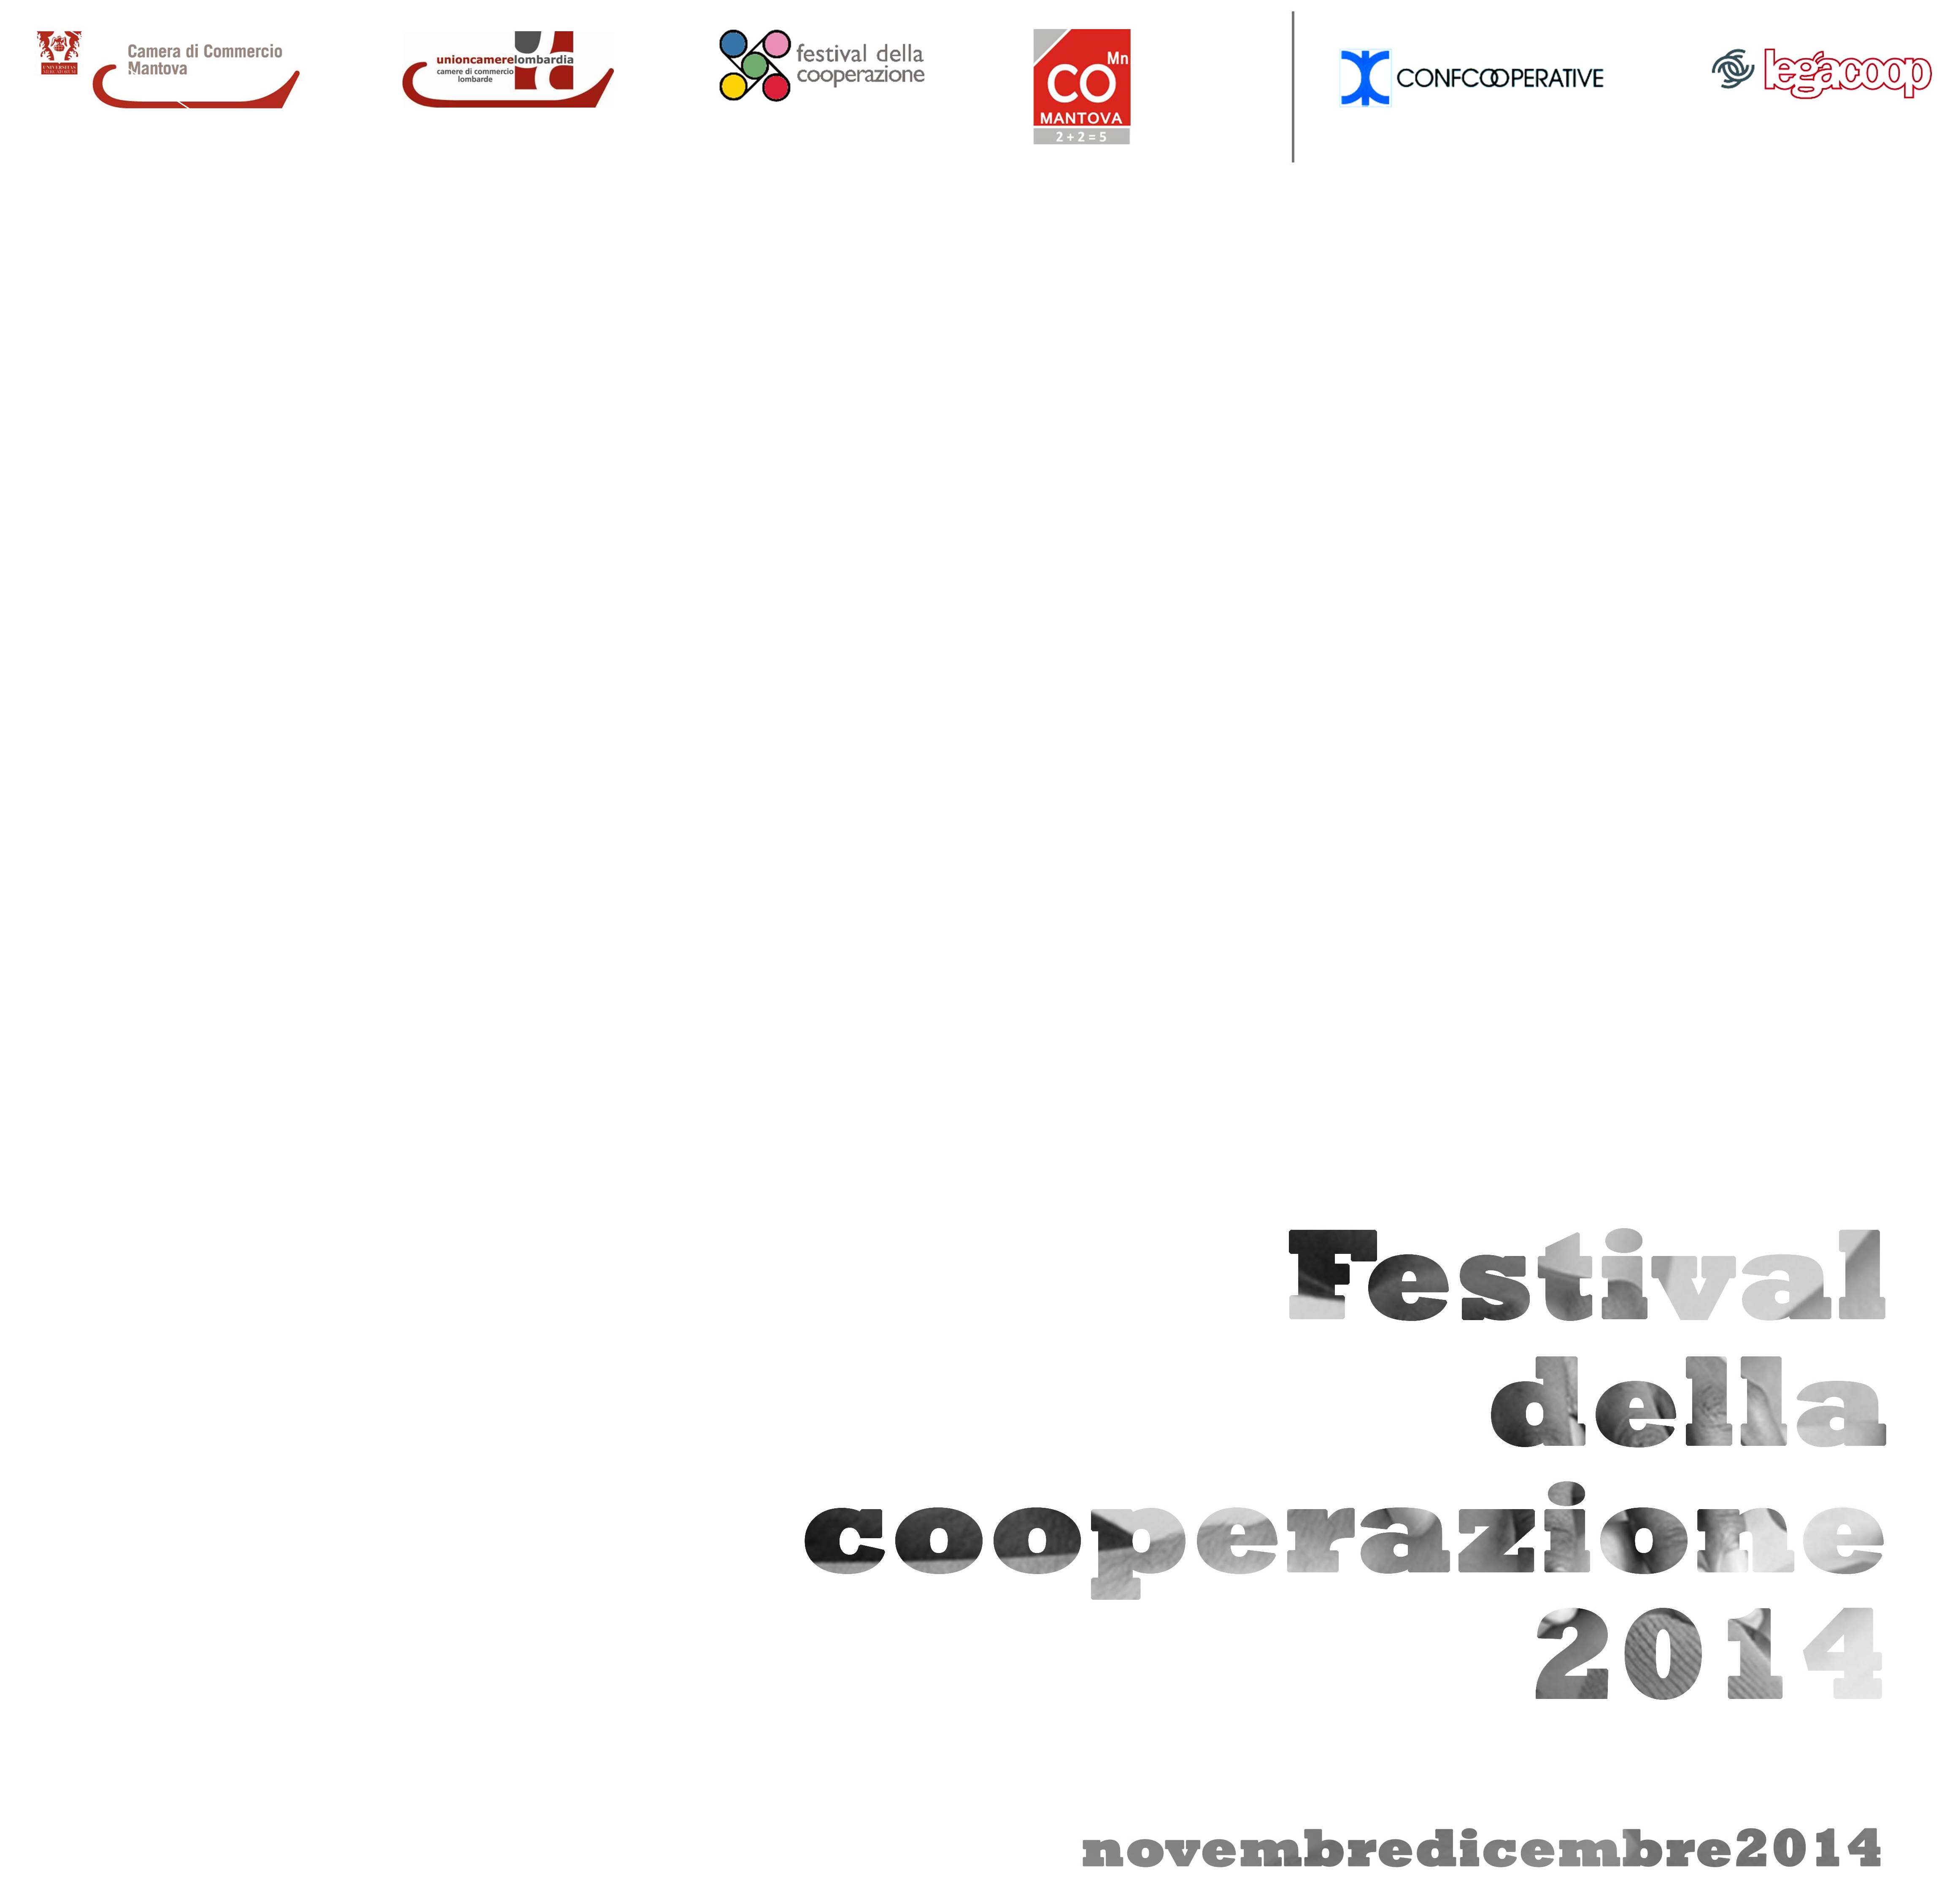 CO-Mantova: international collaborative governance model for the commons